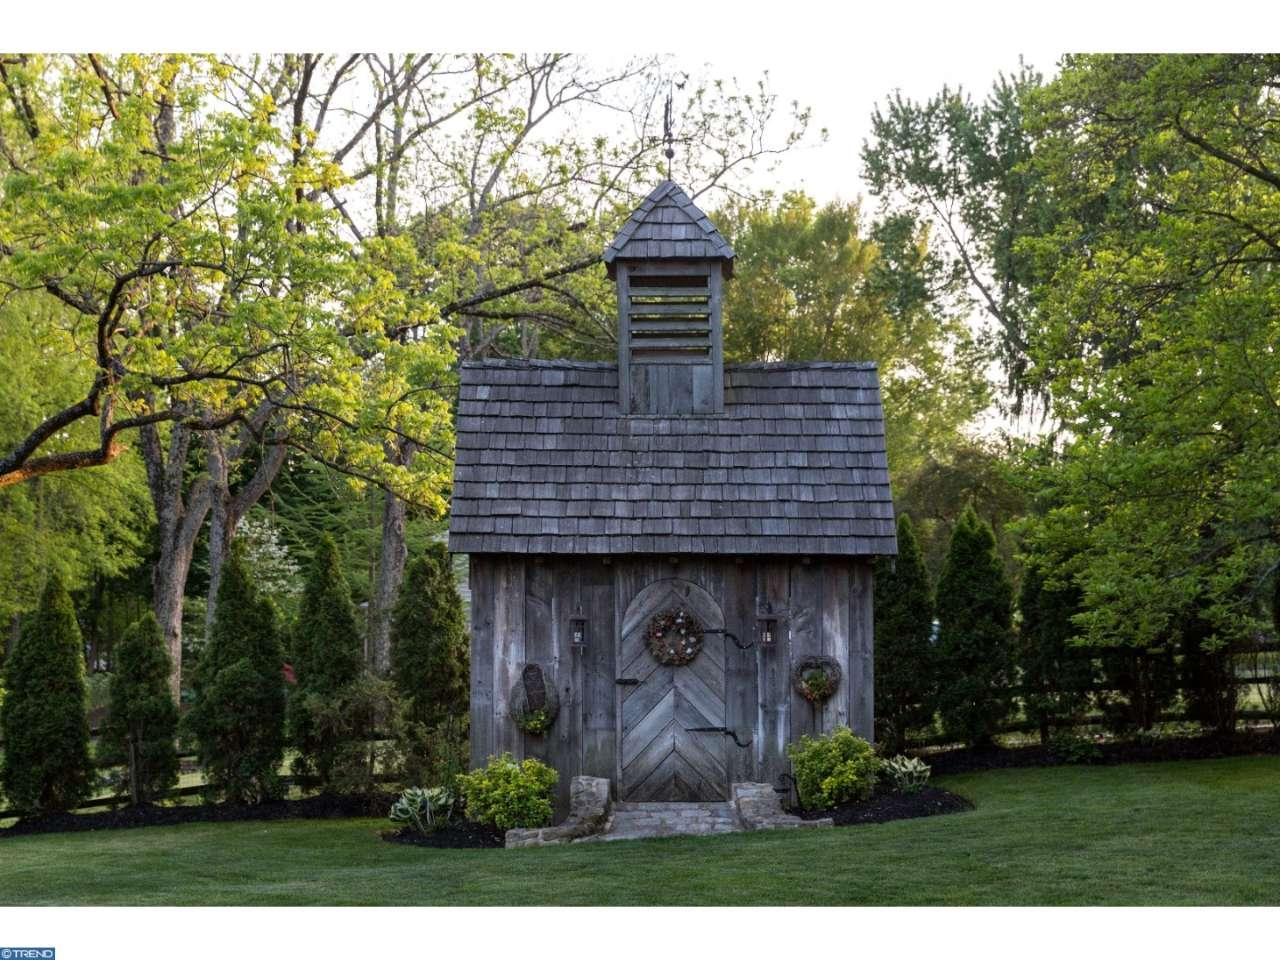 The Leap Year Barn Storybook house 115 Arrons Ave Doylestown PA for sale - shed